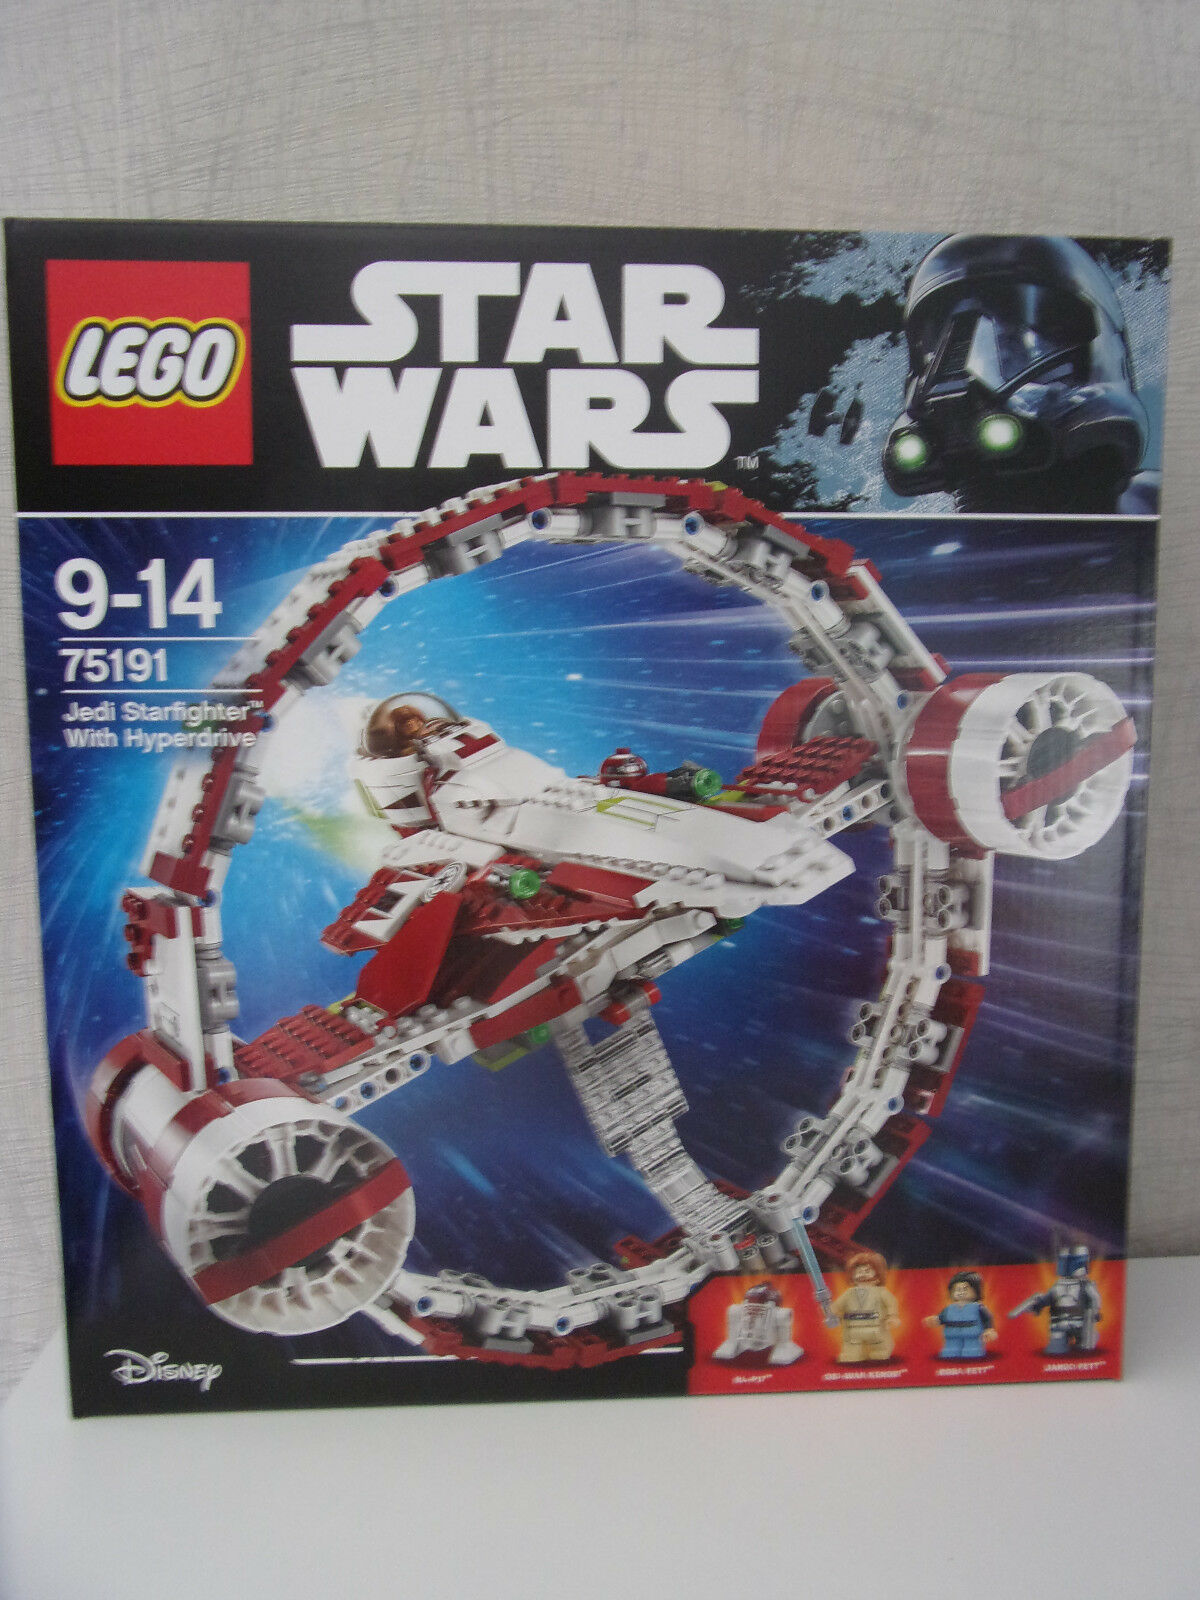 Lego Star Wars 75191 Jedi Starfighter with Hyperdrive - Nip